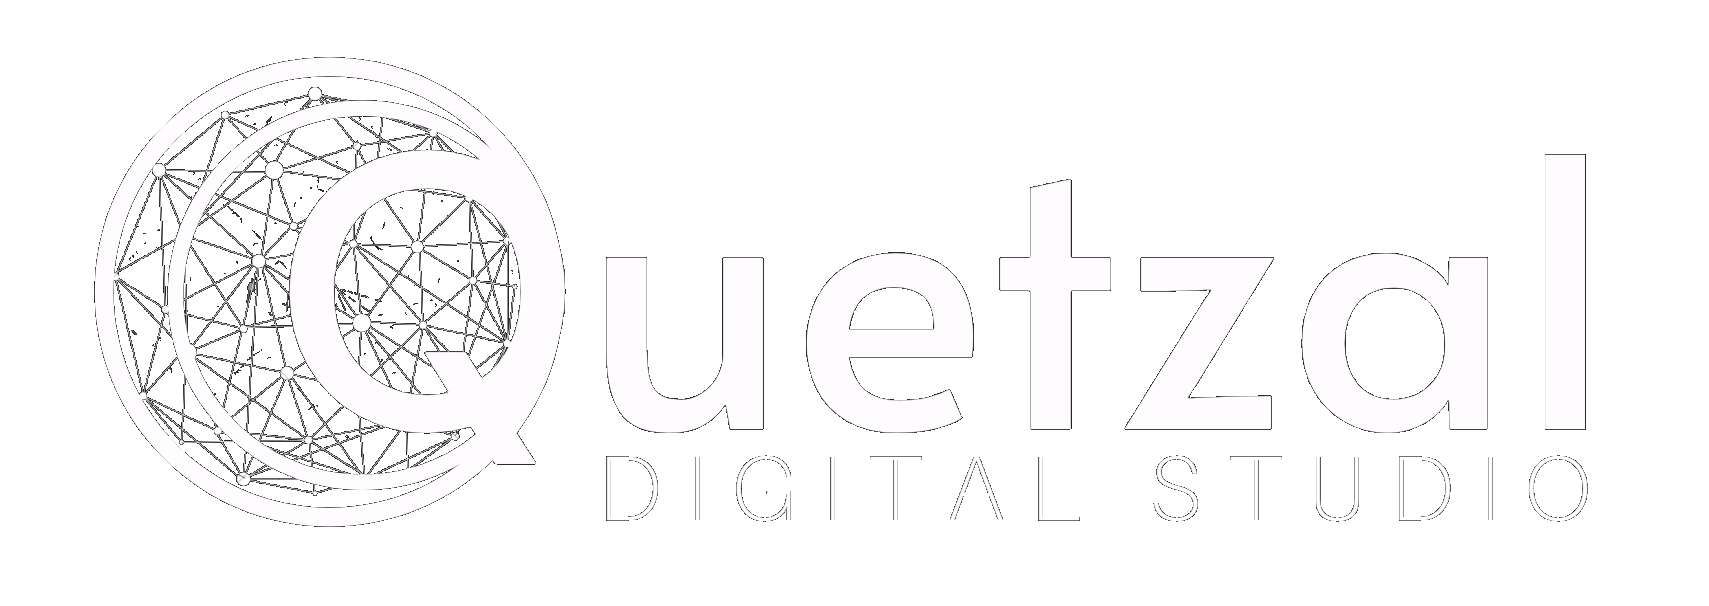 Quetzal Digital Studio